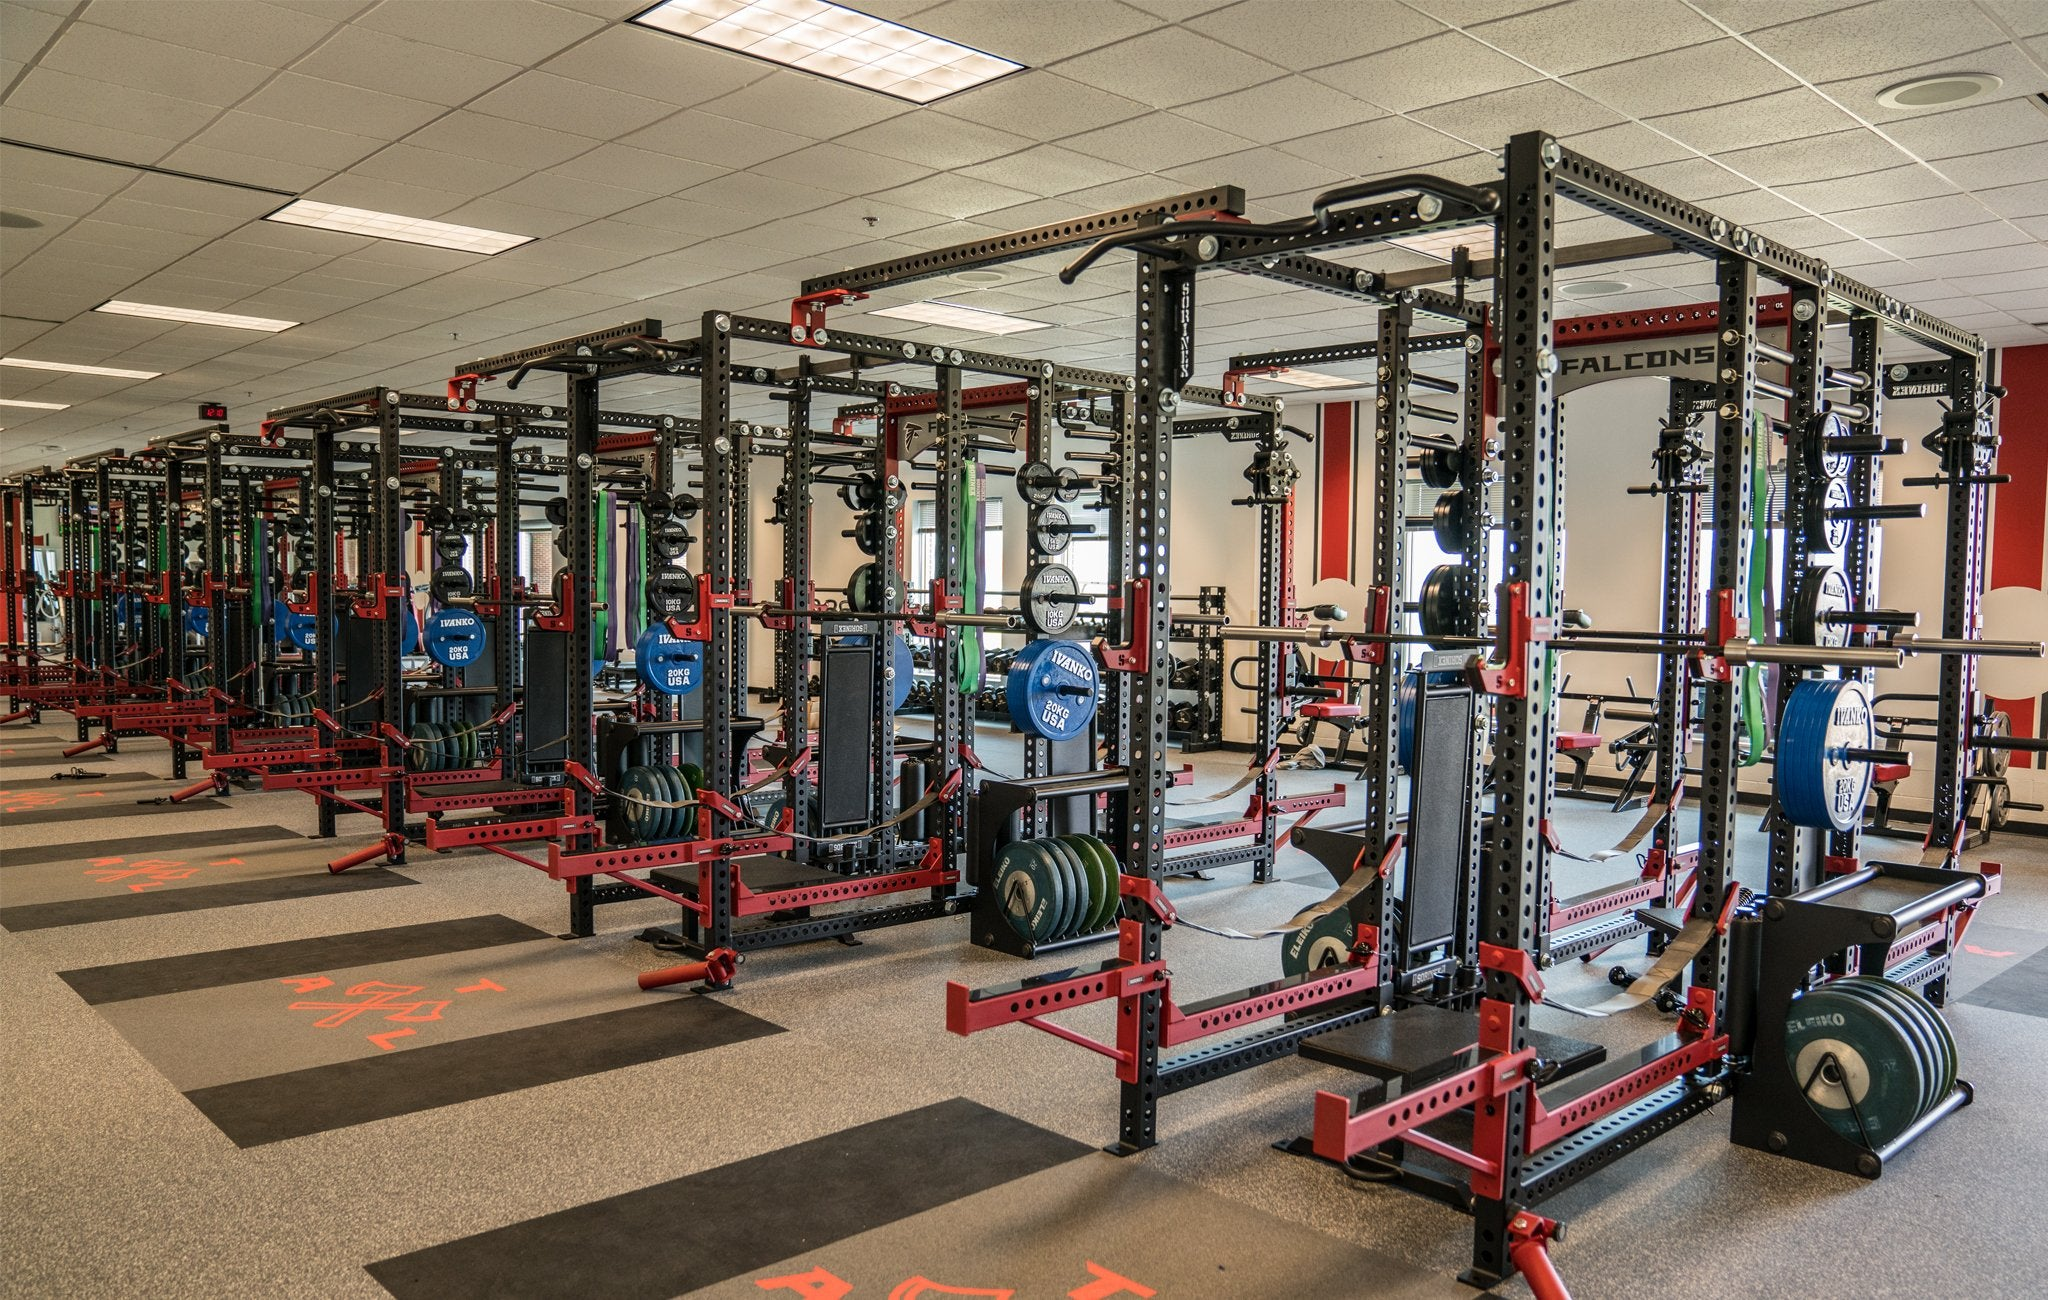 Atlanta Falcons Base Camp Double Full Racks